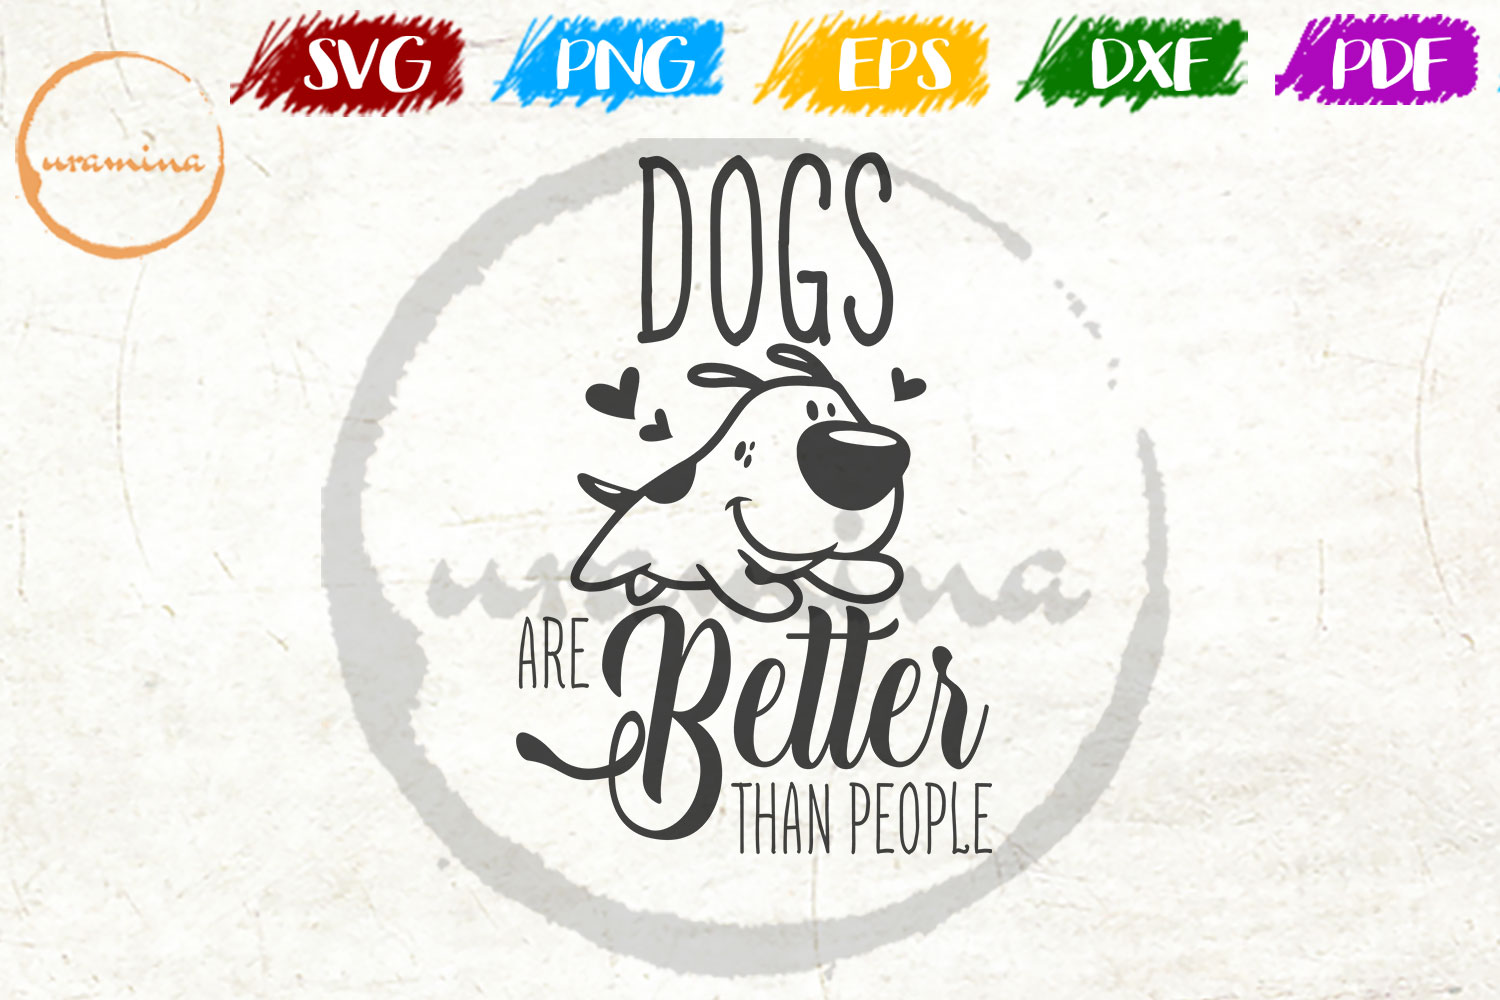 Download Free Dogs Are Better Than People Graphic By Uramina Creative Fabrica for Cricut Explore, Silhouette and other cutting machines.